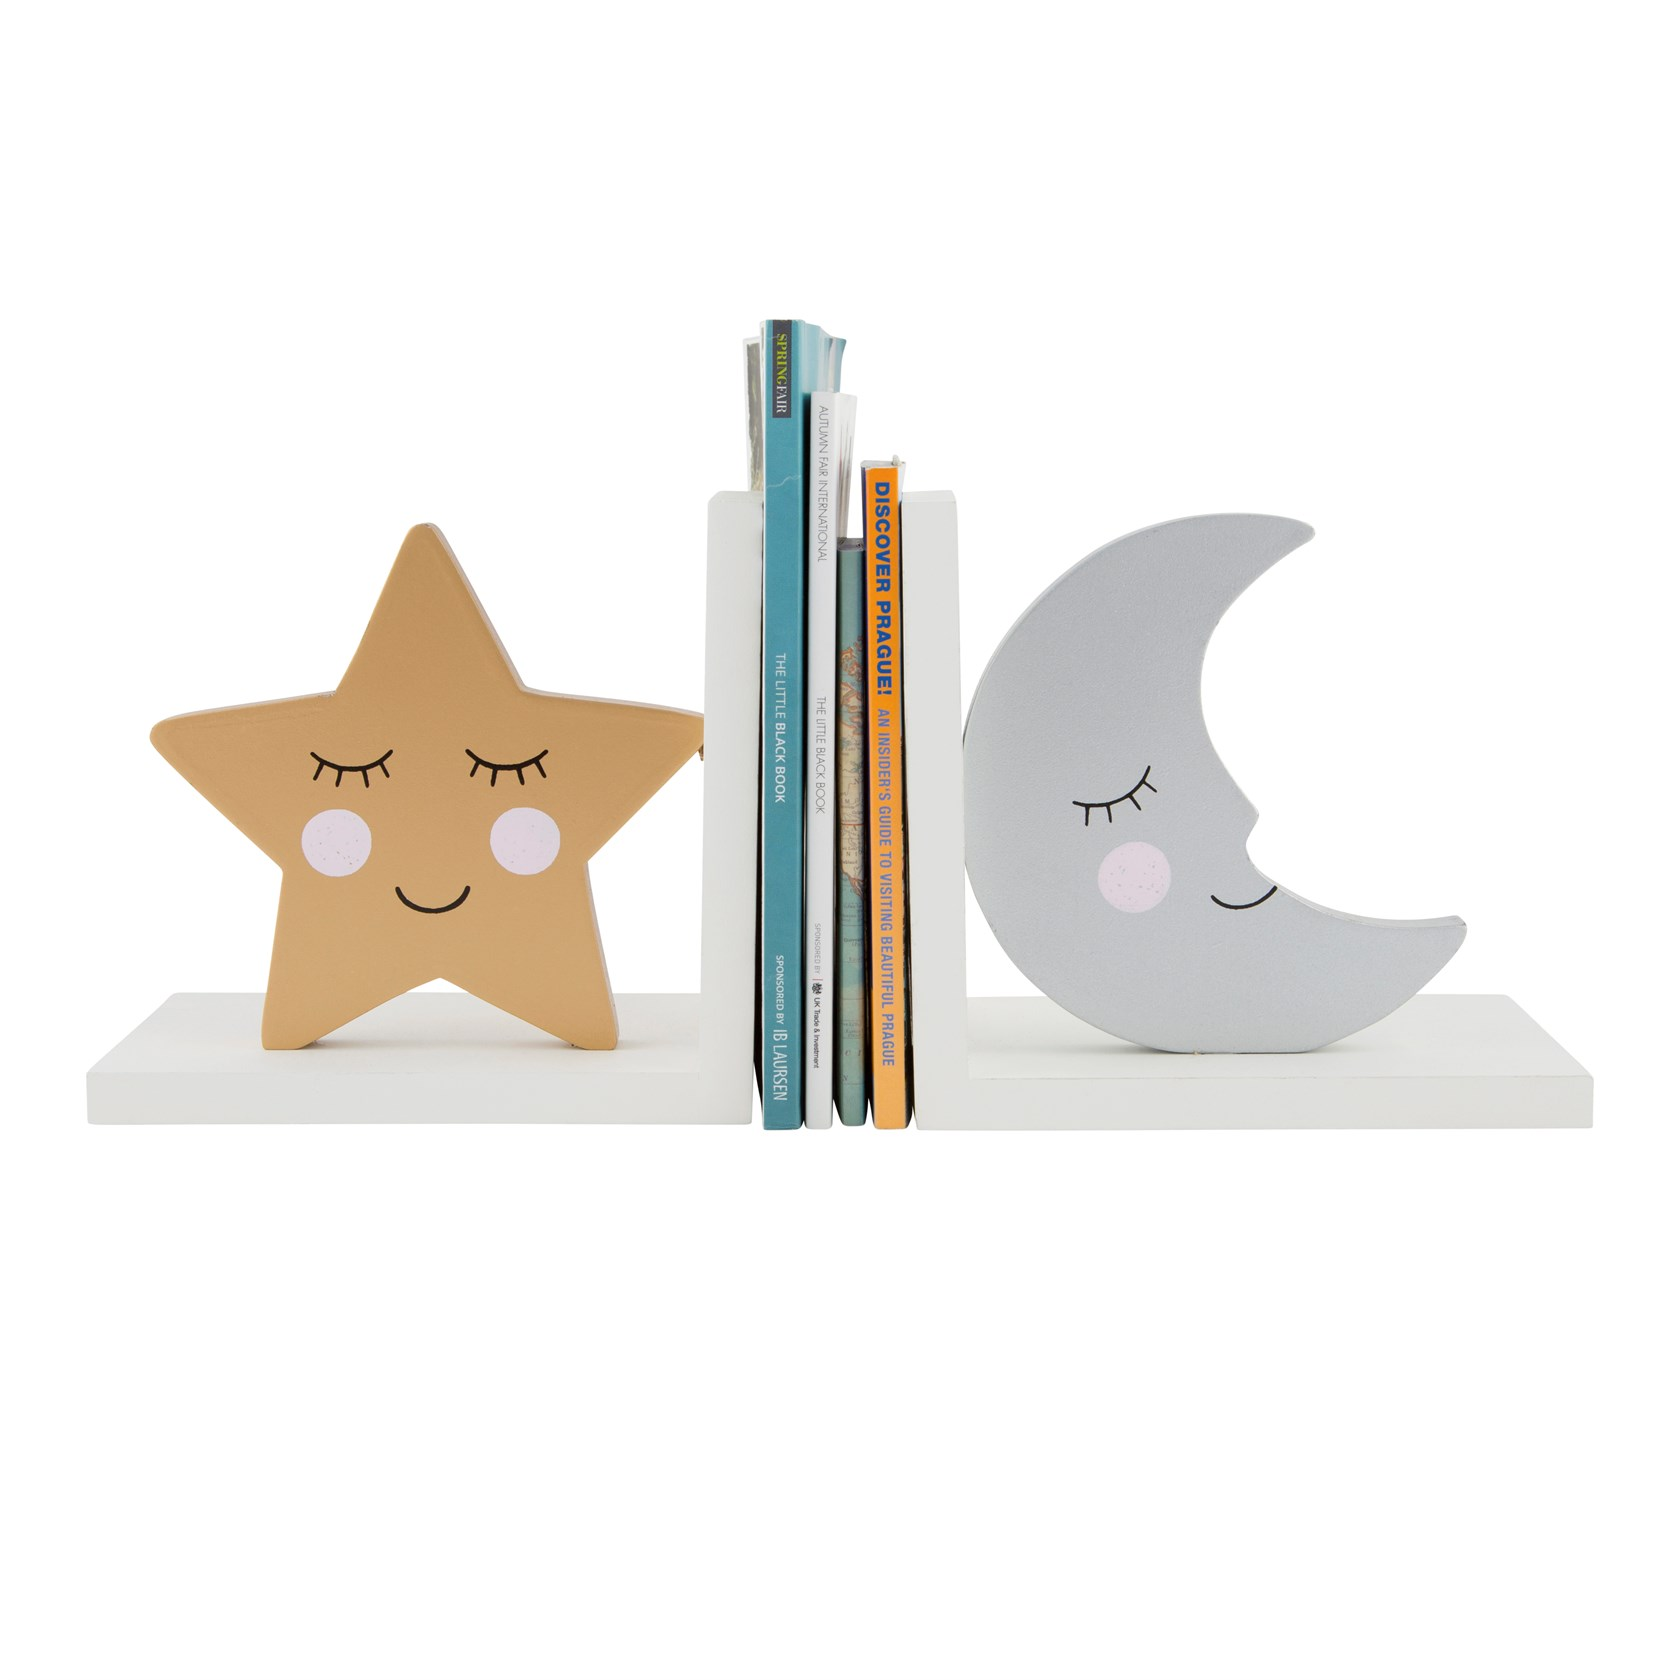 BOOKENDS - SWEET DREAMS STAR & MOON